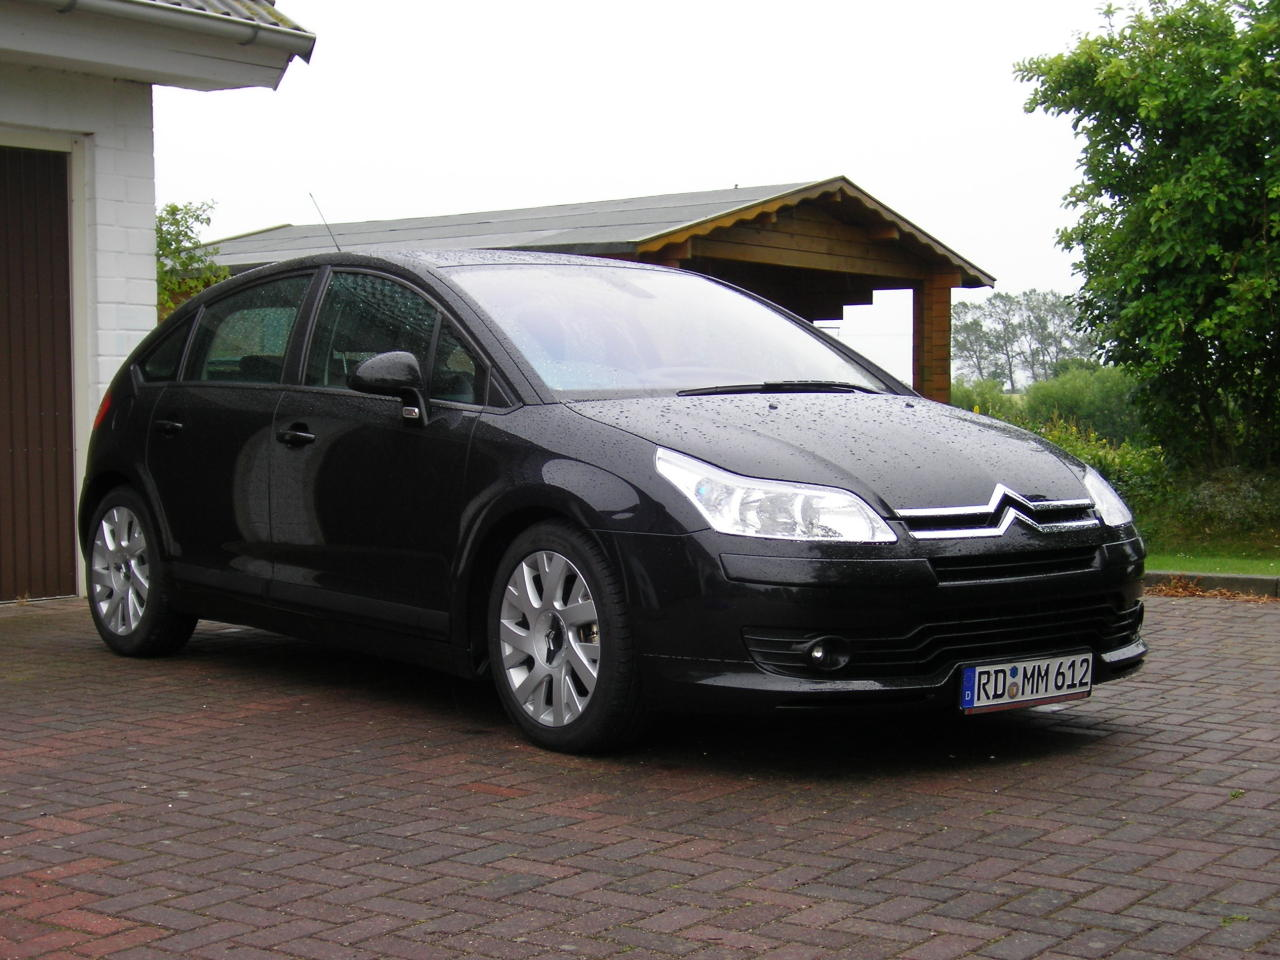 citroen c4 coupe 1 6 hdi vtr 10 details of cars on details of. Black Bedroom Furniture Sets. Home Design Ideas